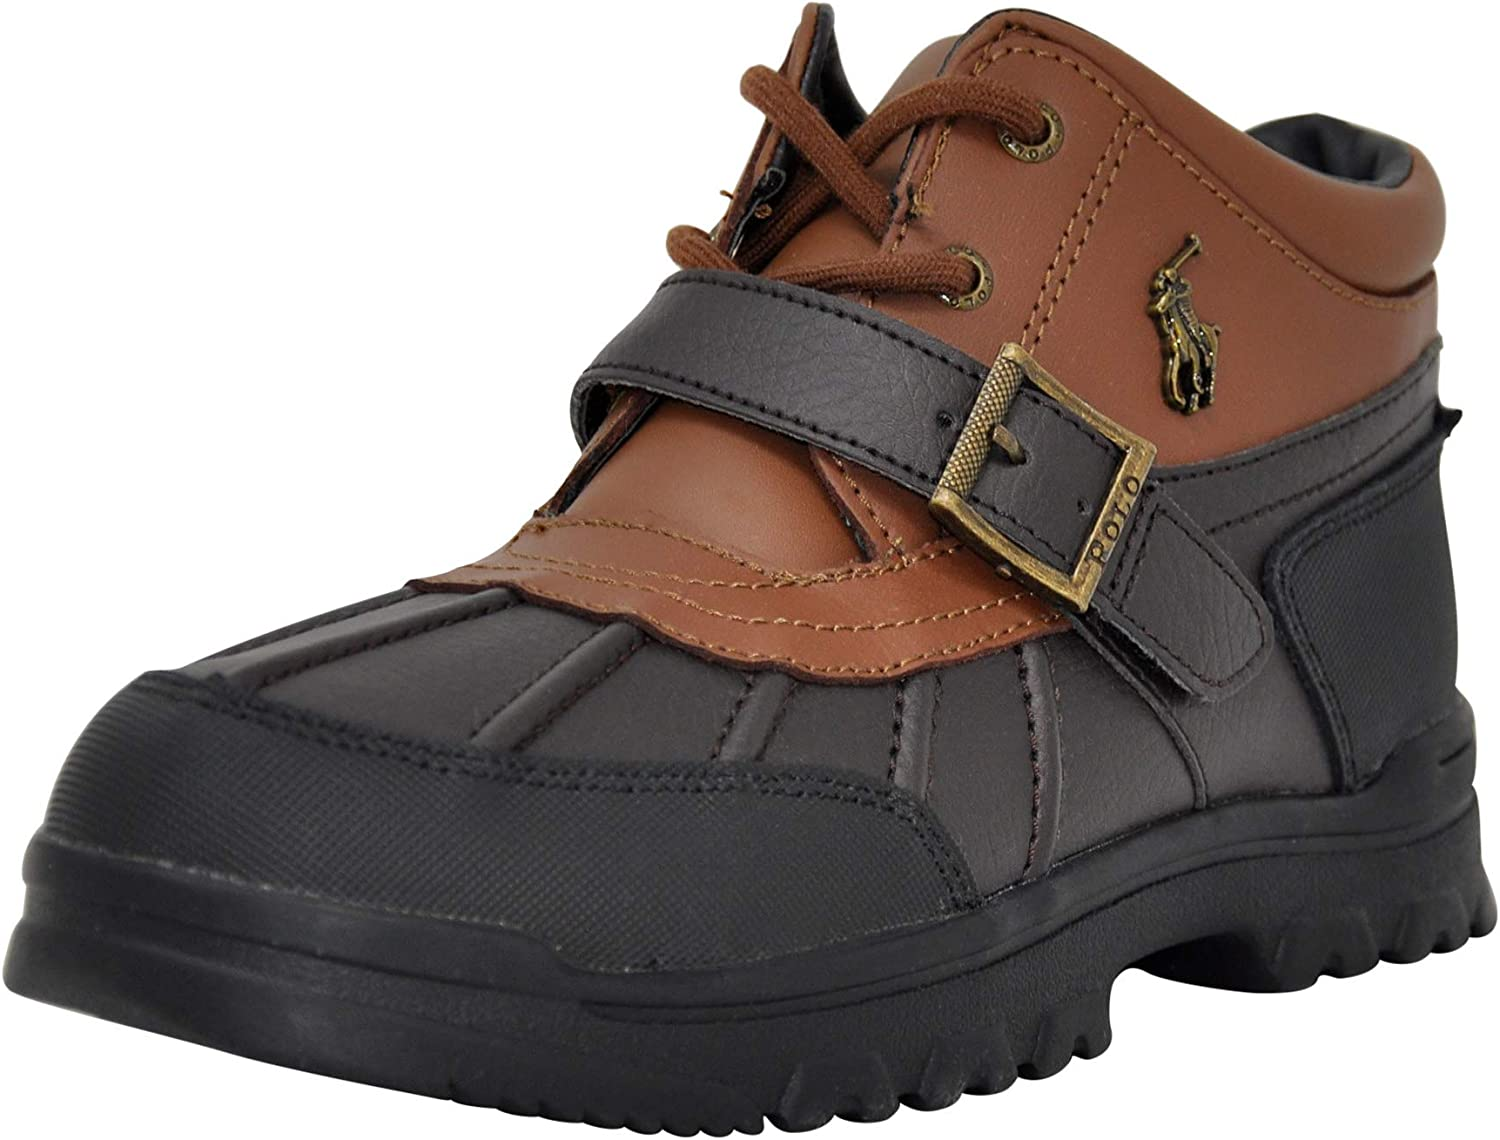 Max 68% OFF Polo Ralph Lauren Unisex-Child Now on sale Boys Boot Dover Chocolate Tan Le